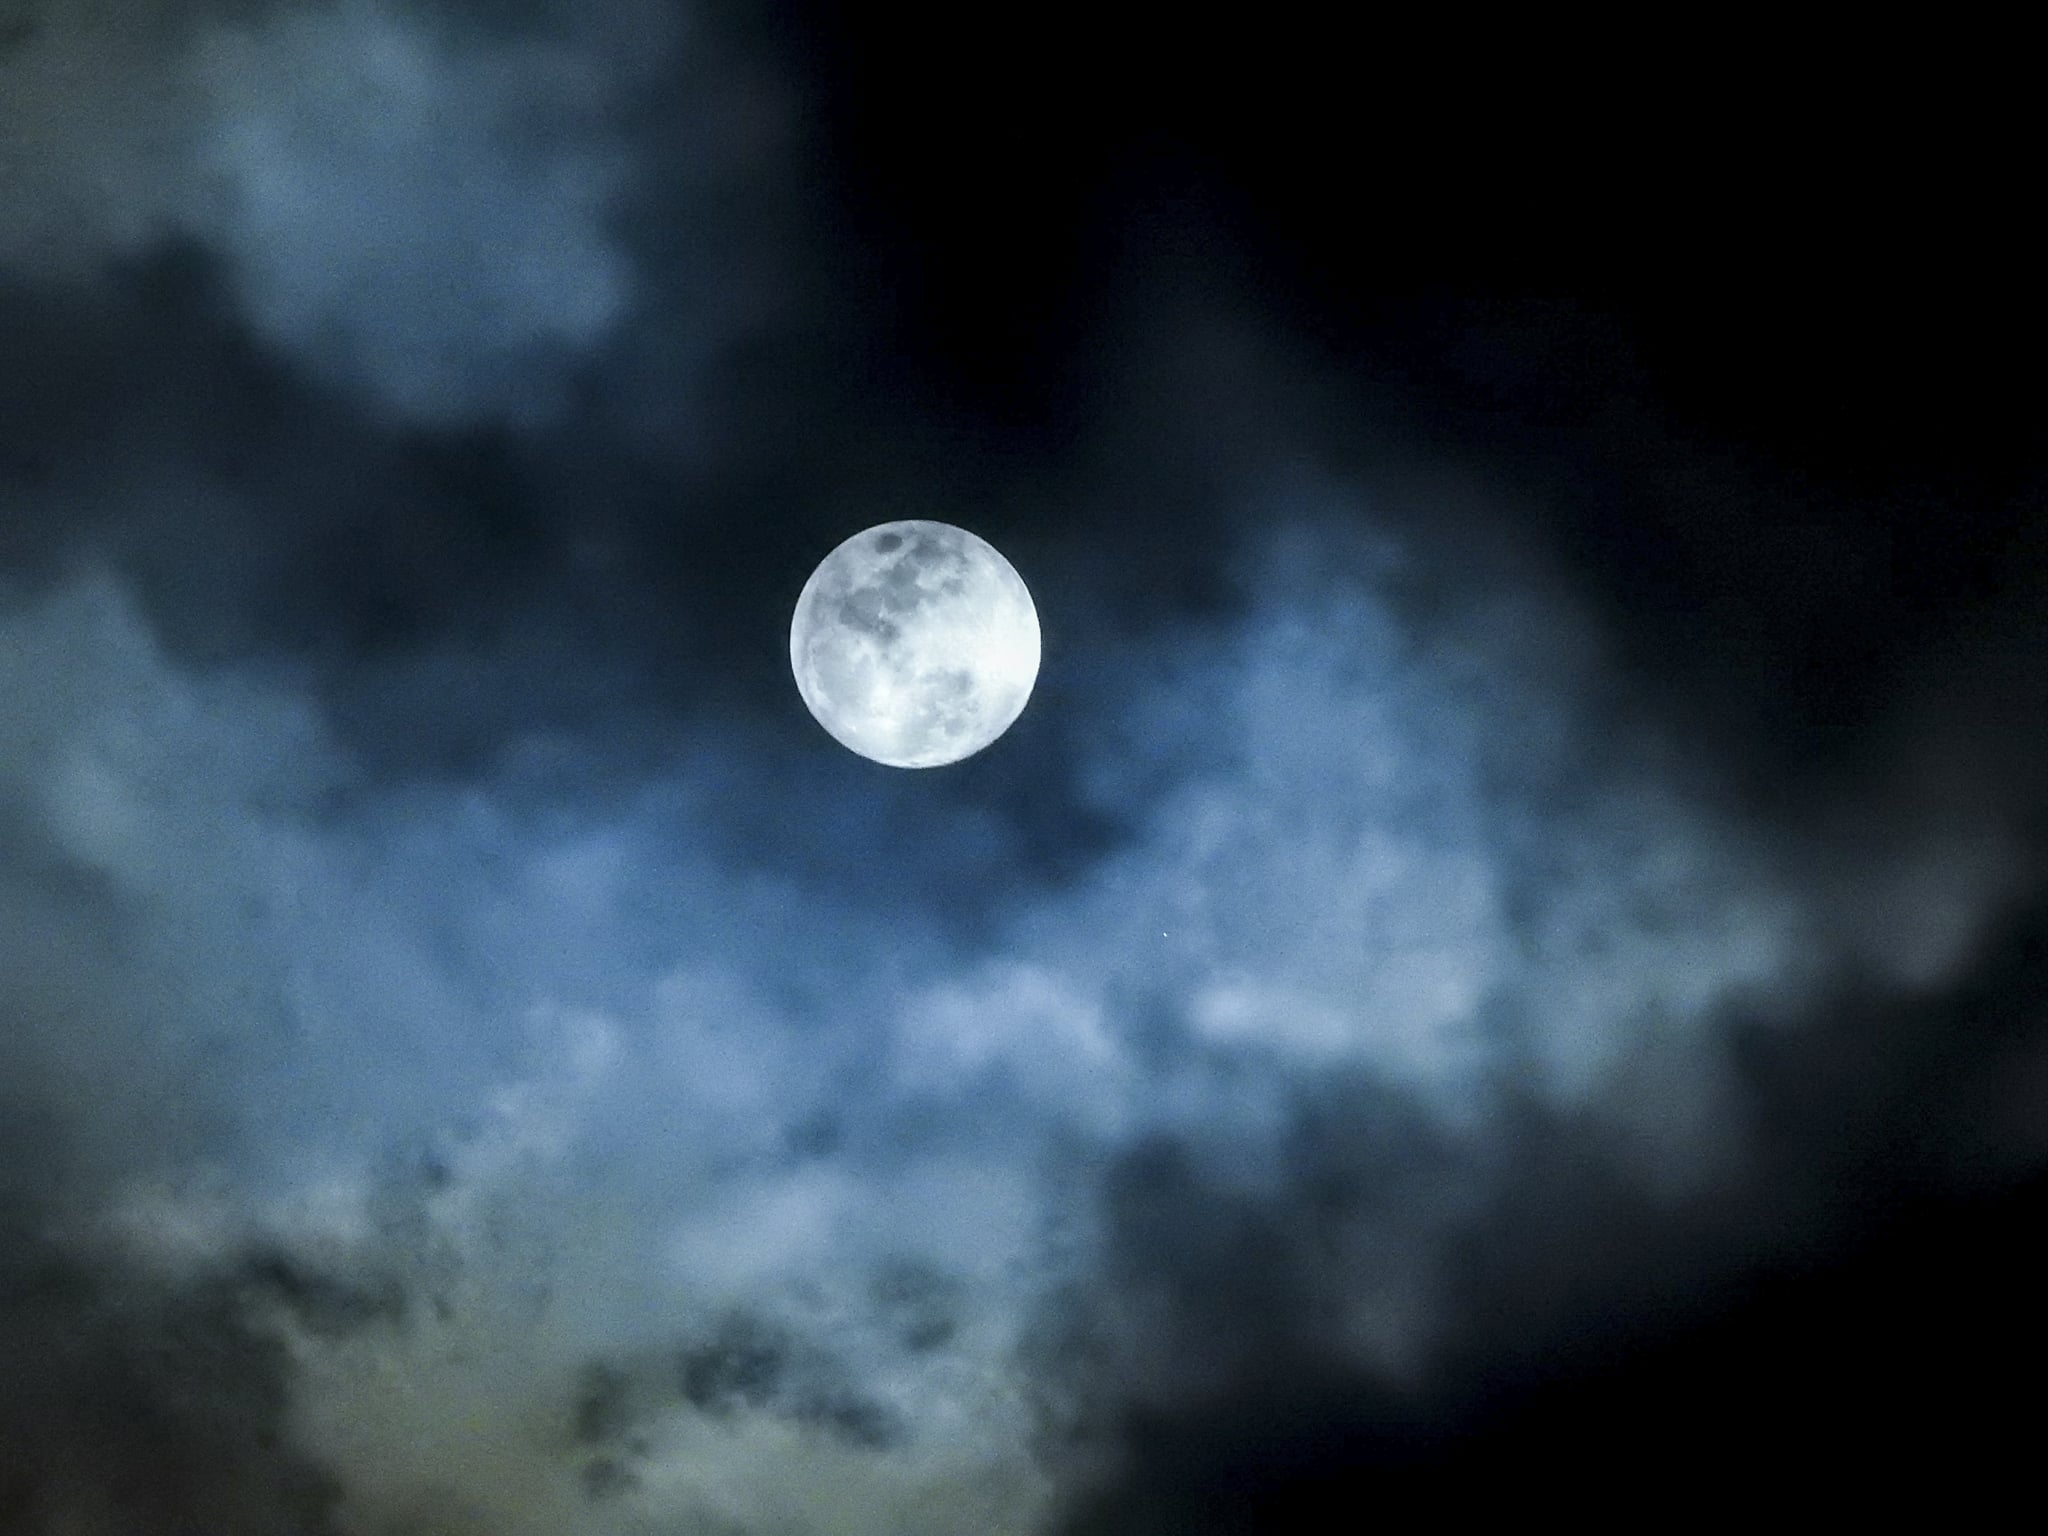 White blue in color, up close very detailed features of a full moon against a black backdrop of a sky. There are clouds lit up in front of the moon as they pass by.